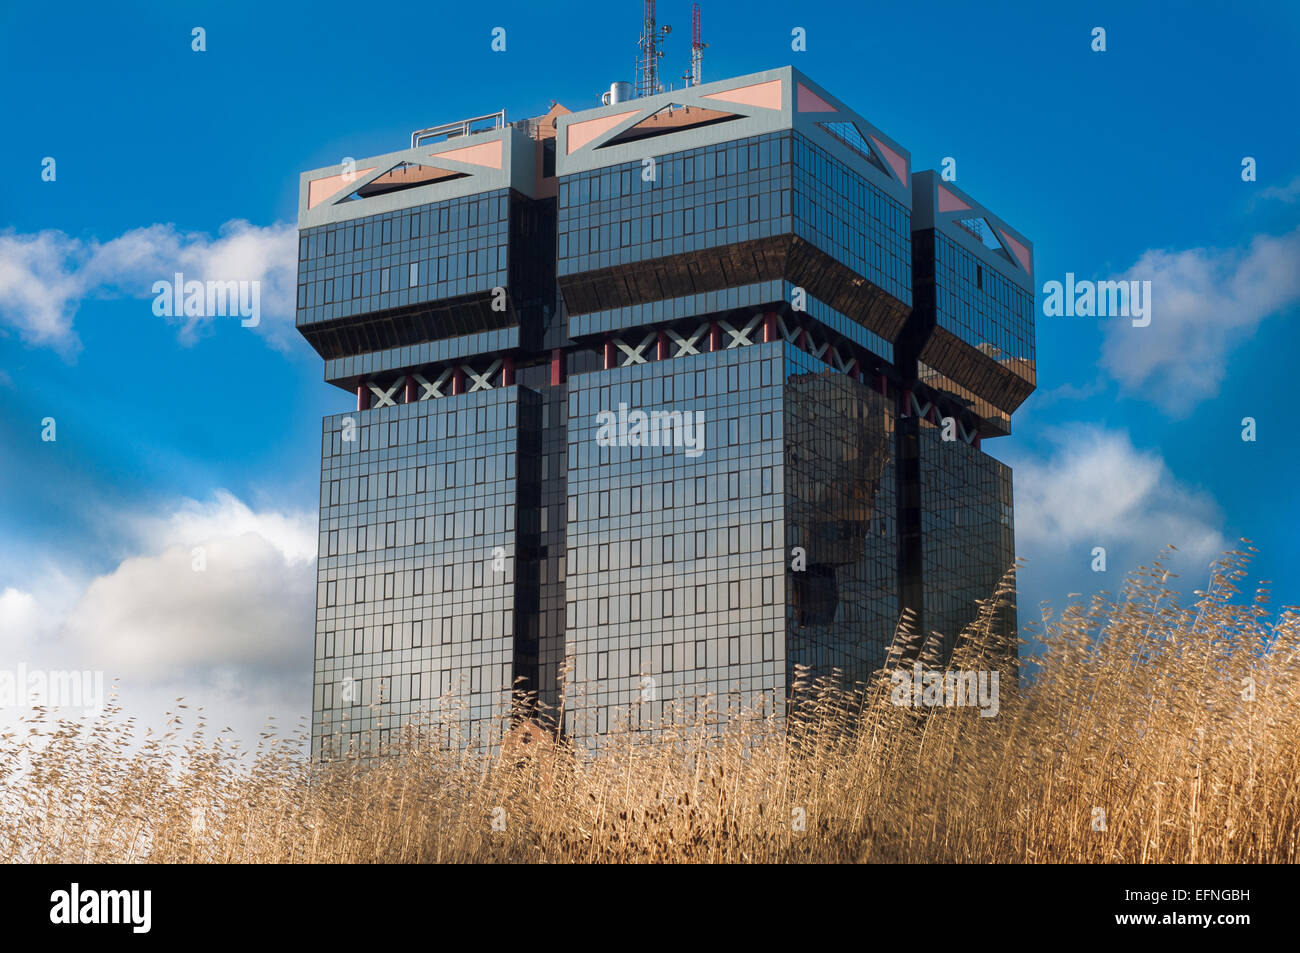 Big and squared skyscraper over a hayfield - Stock Image